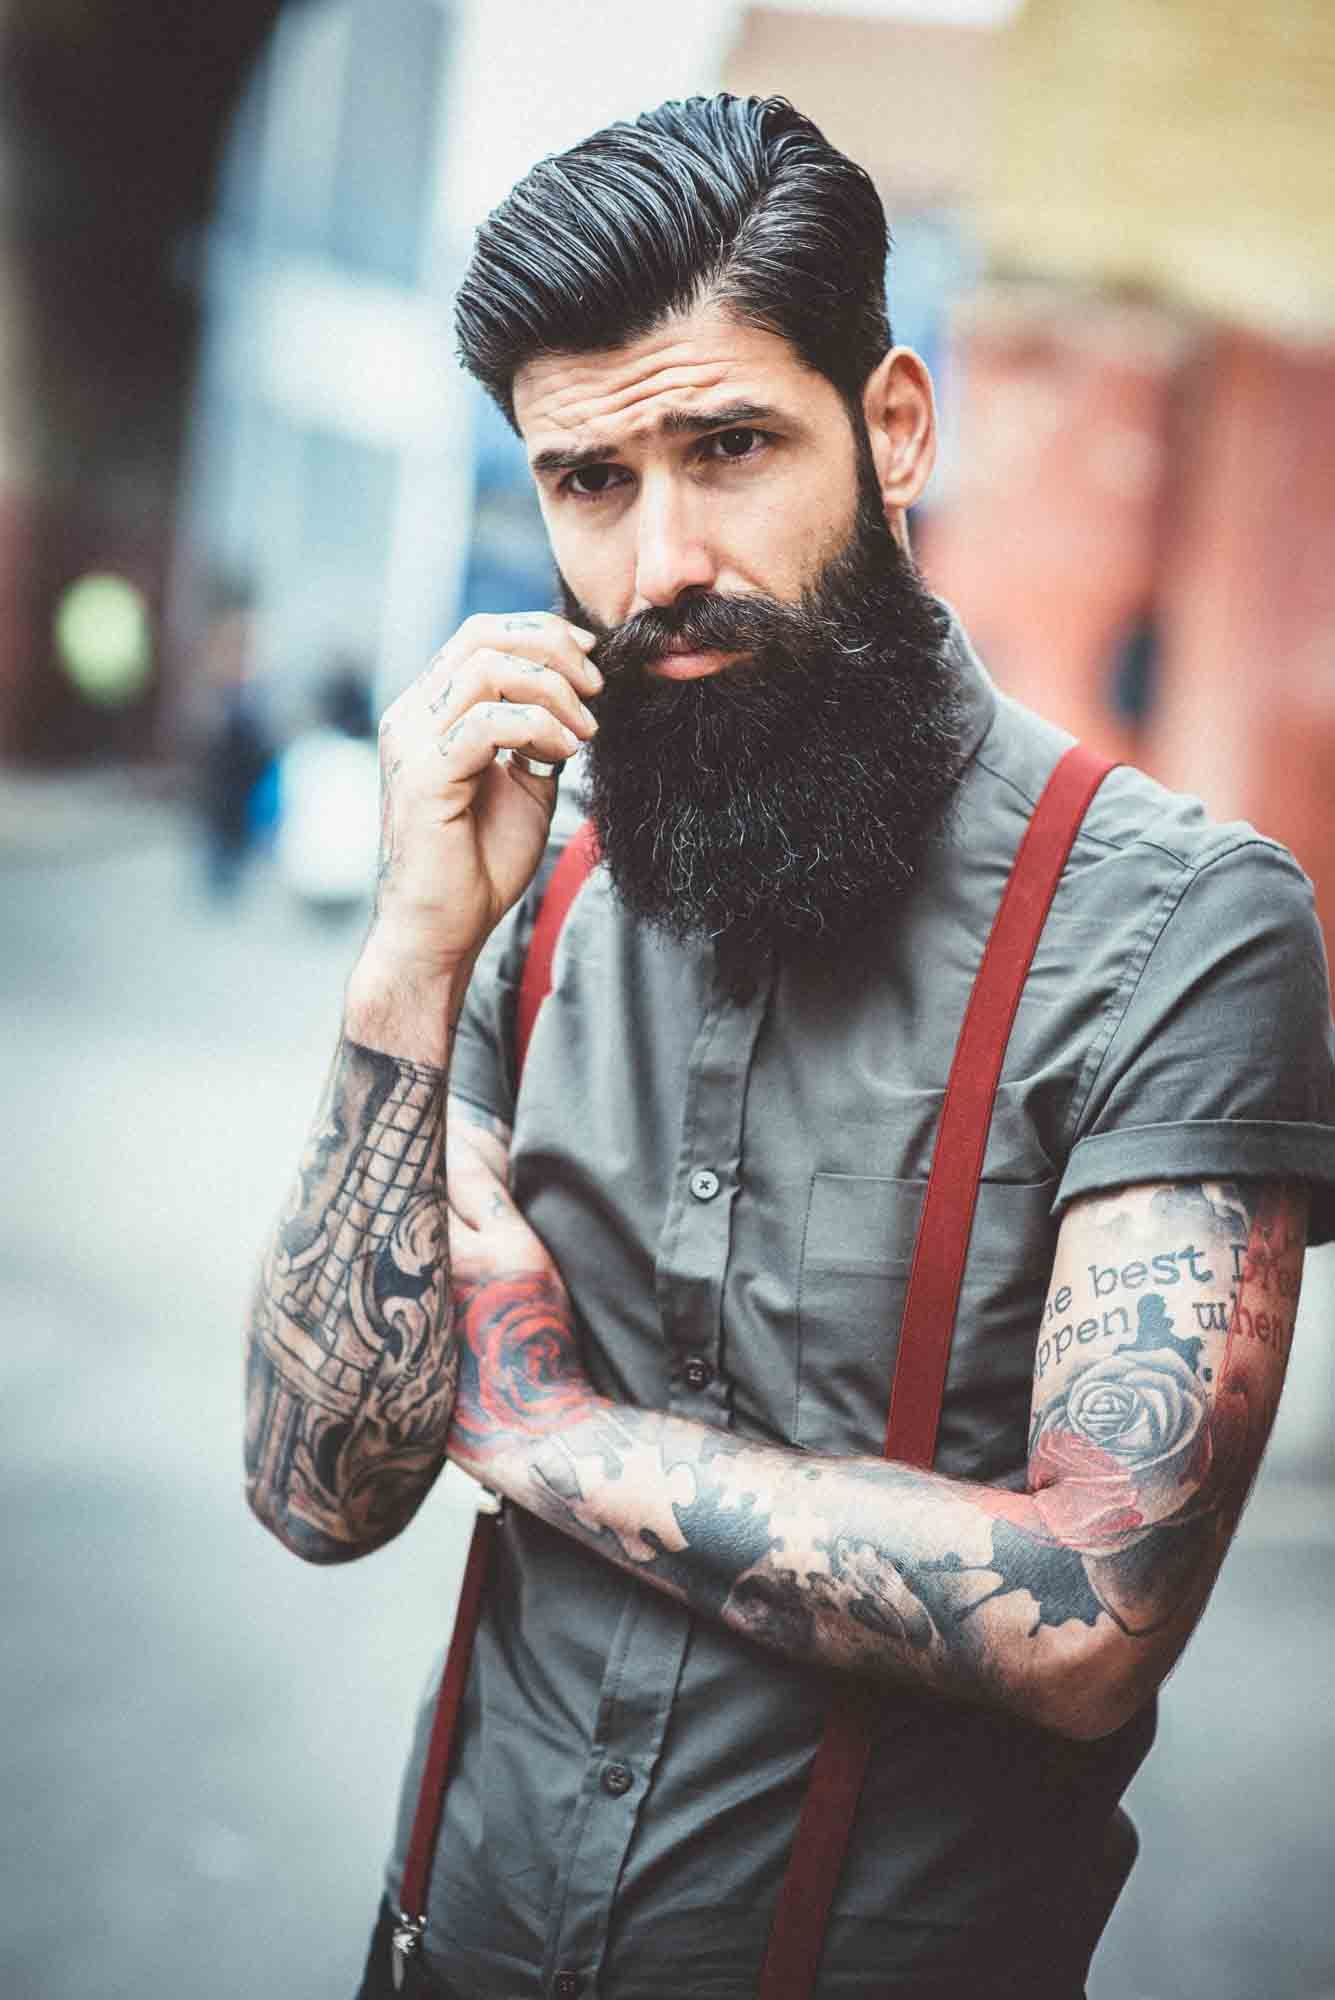 train your beard